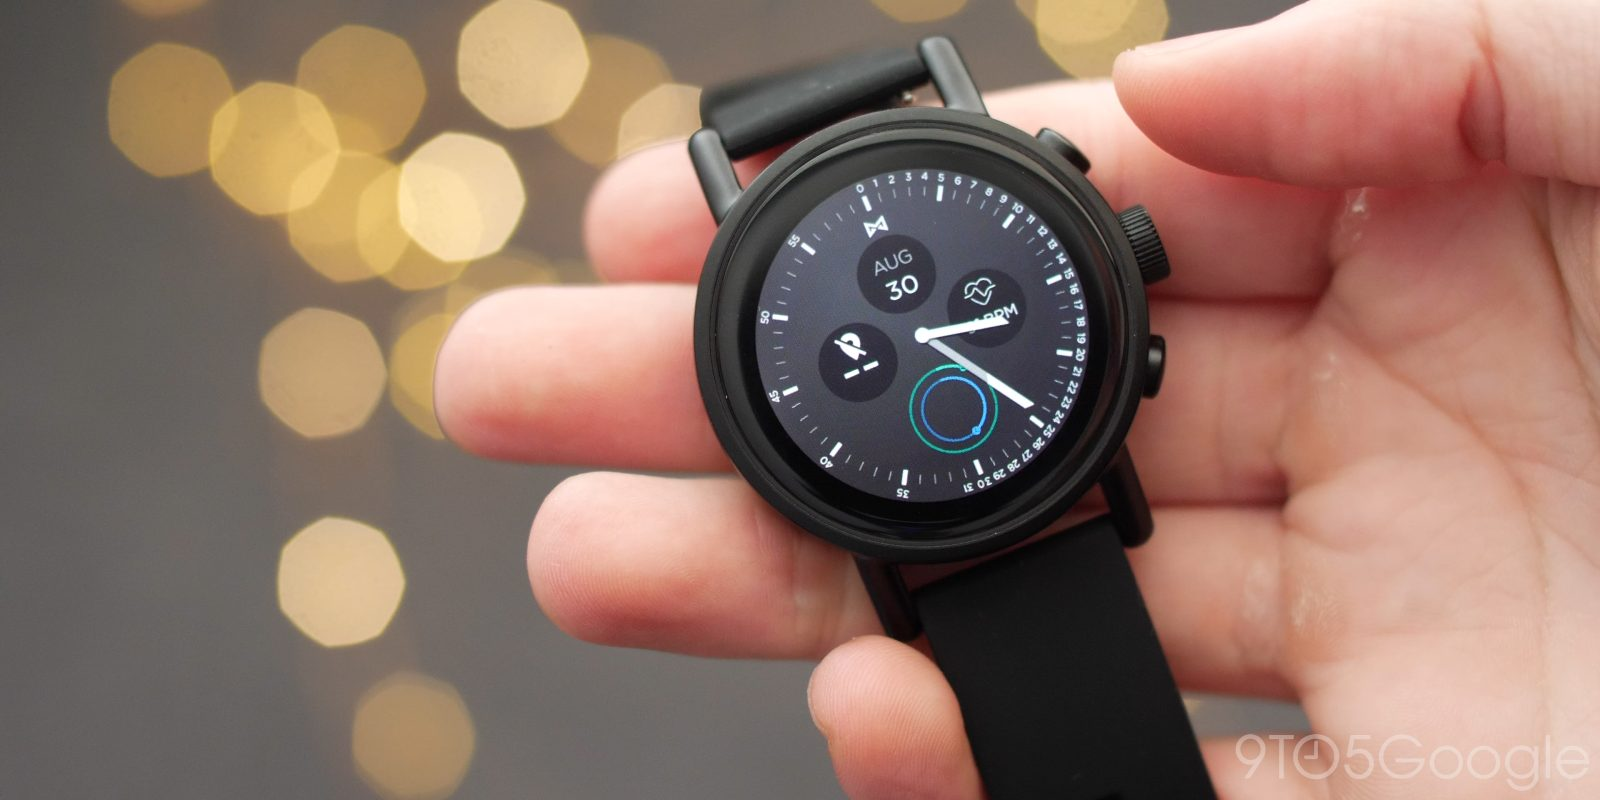 Misfit Vapor X review: A sleek, stylish, and smooth smartwatch [Video]